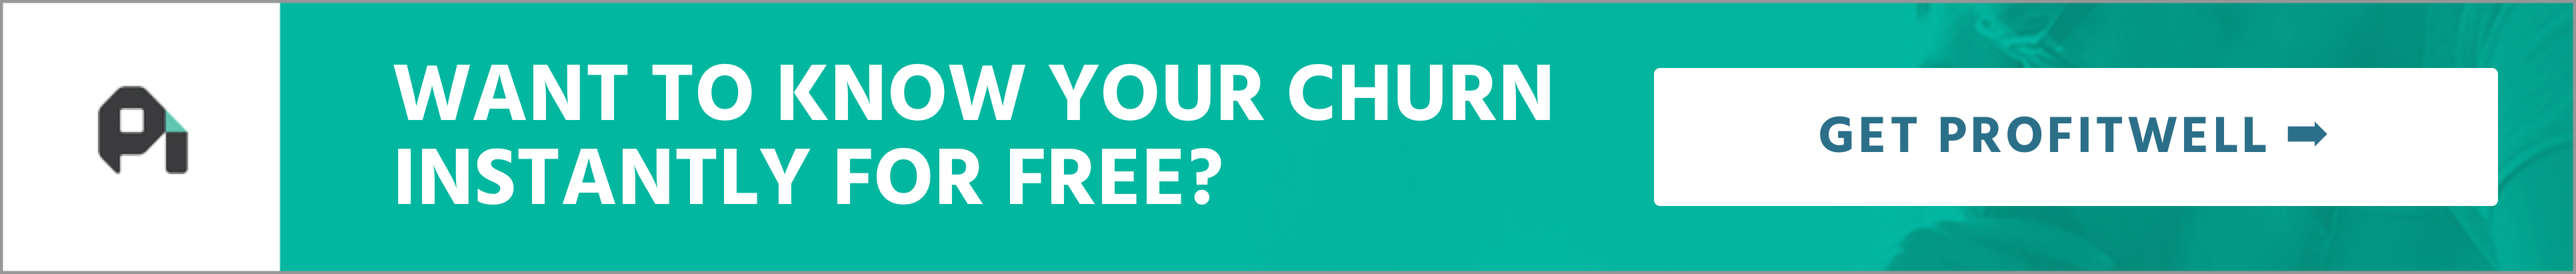 knowyourchurninline.png